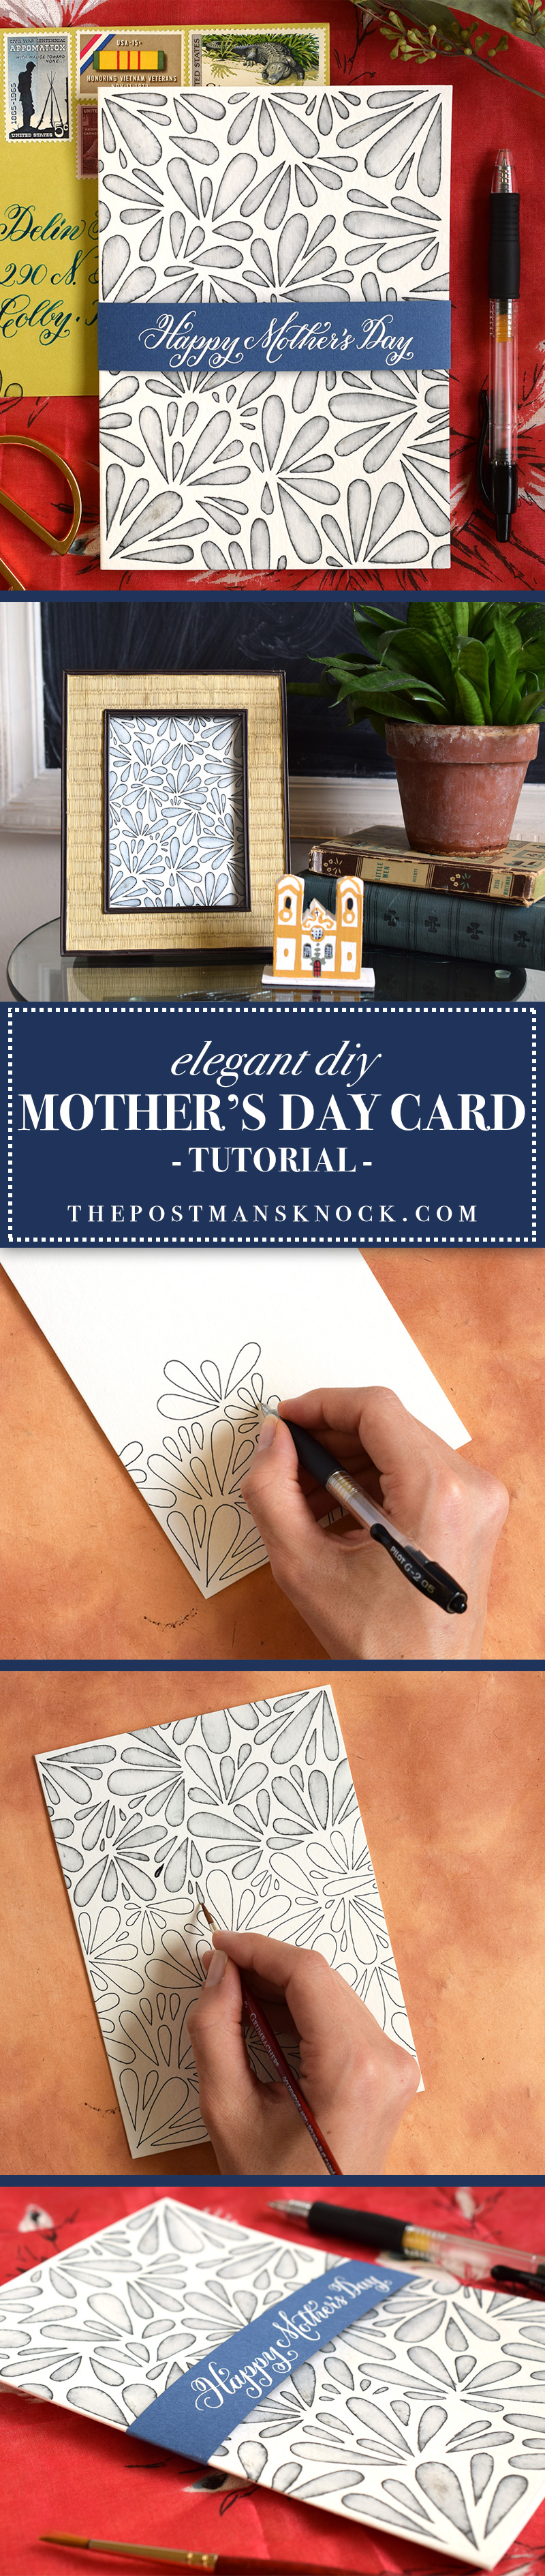 Elegant diy mother 39 s day card tutorial the postman 39 s knock for Classy mothers day cards